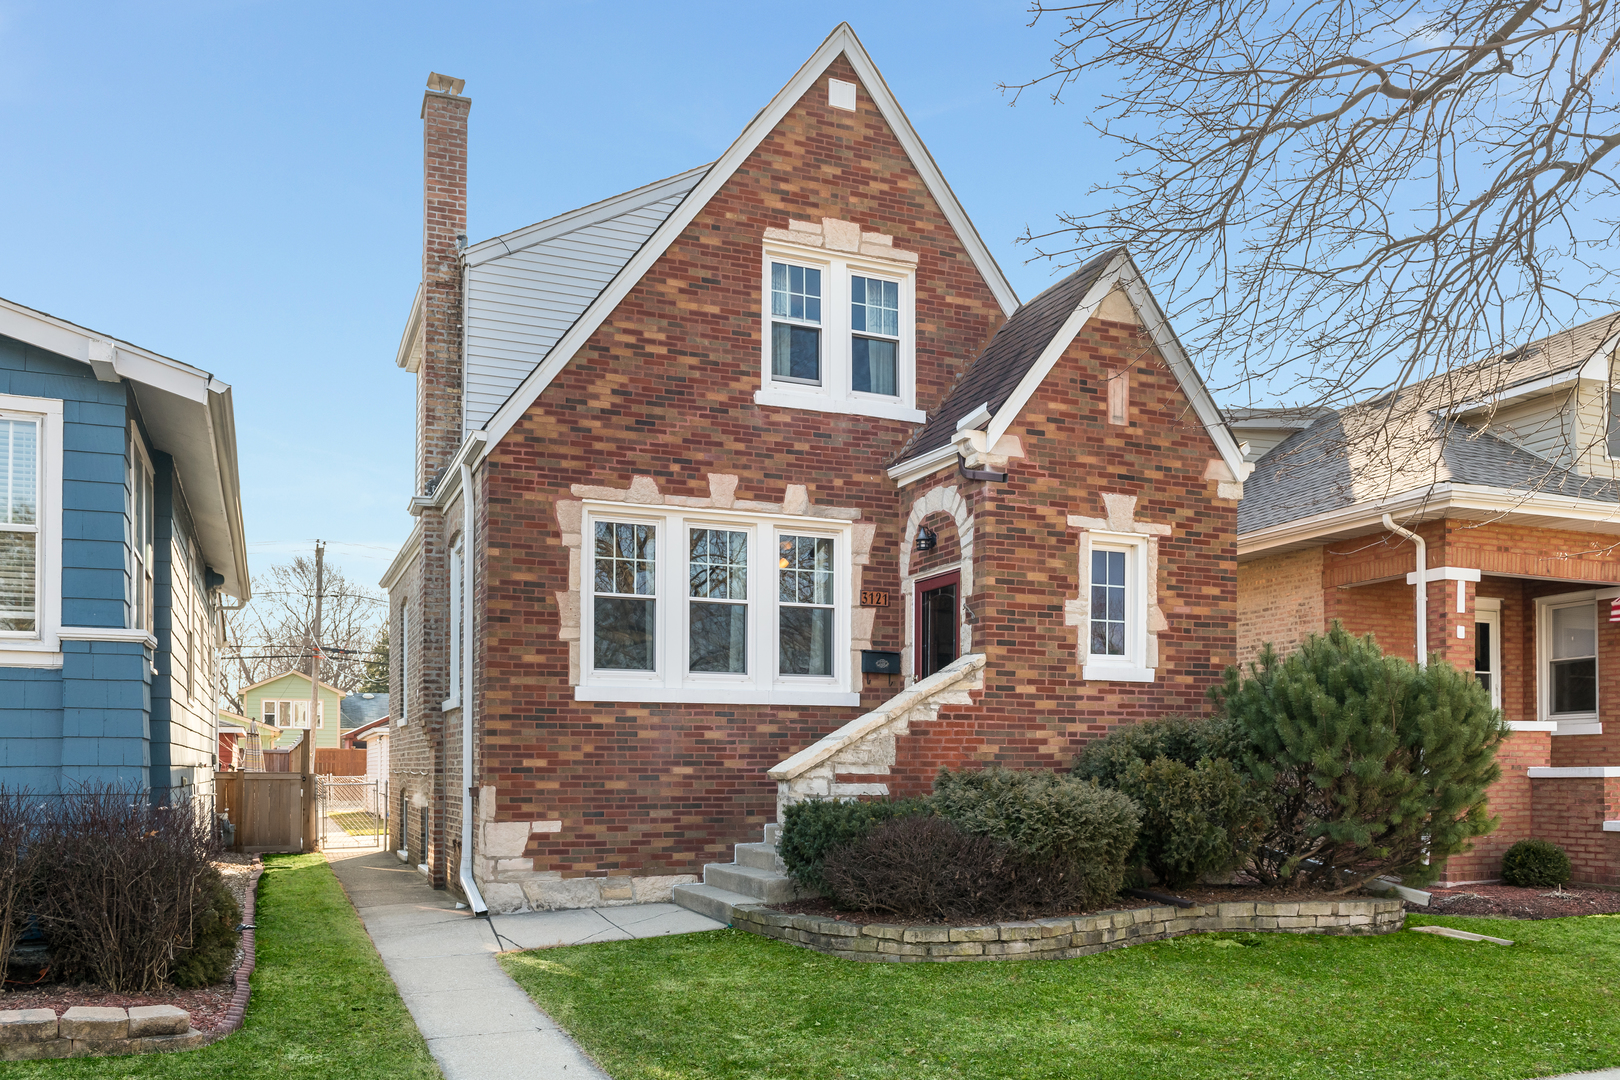 3121 Vernon ,Brookfield, Illinois 60513